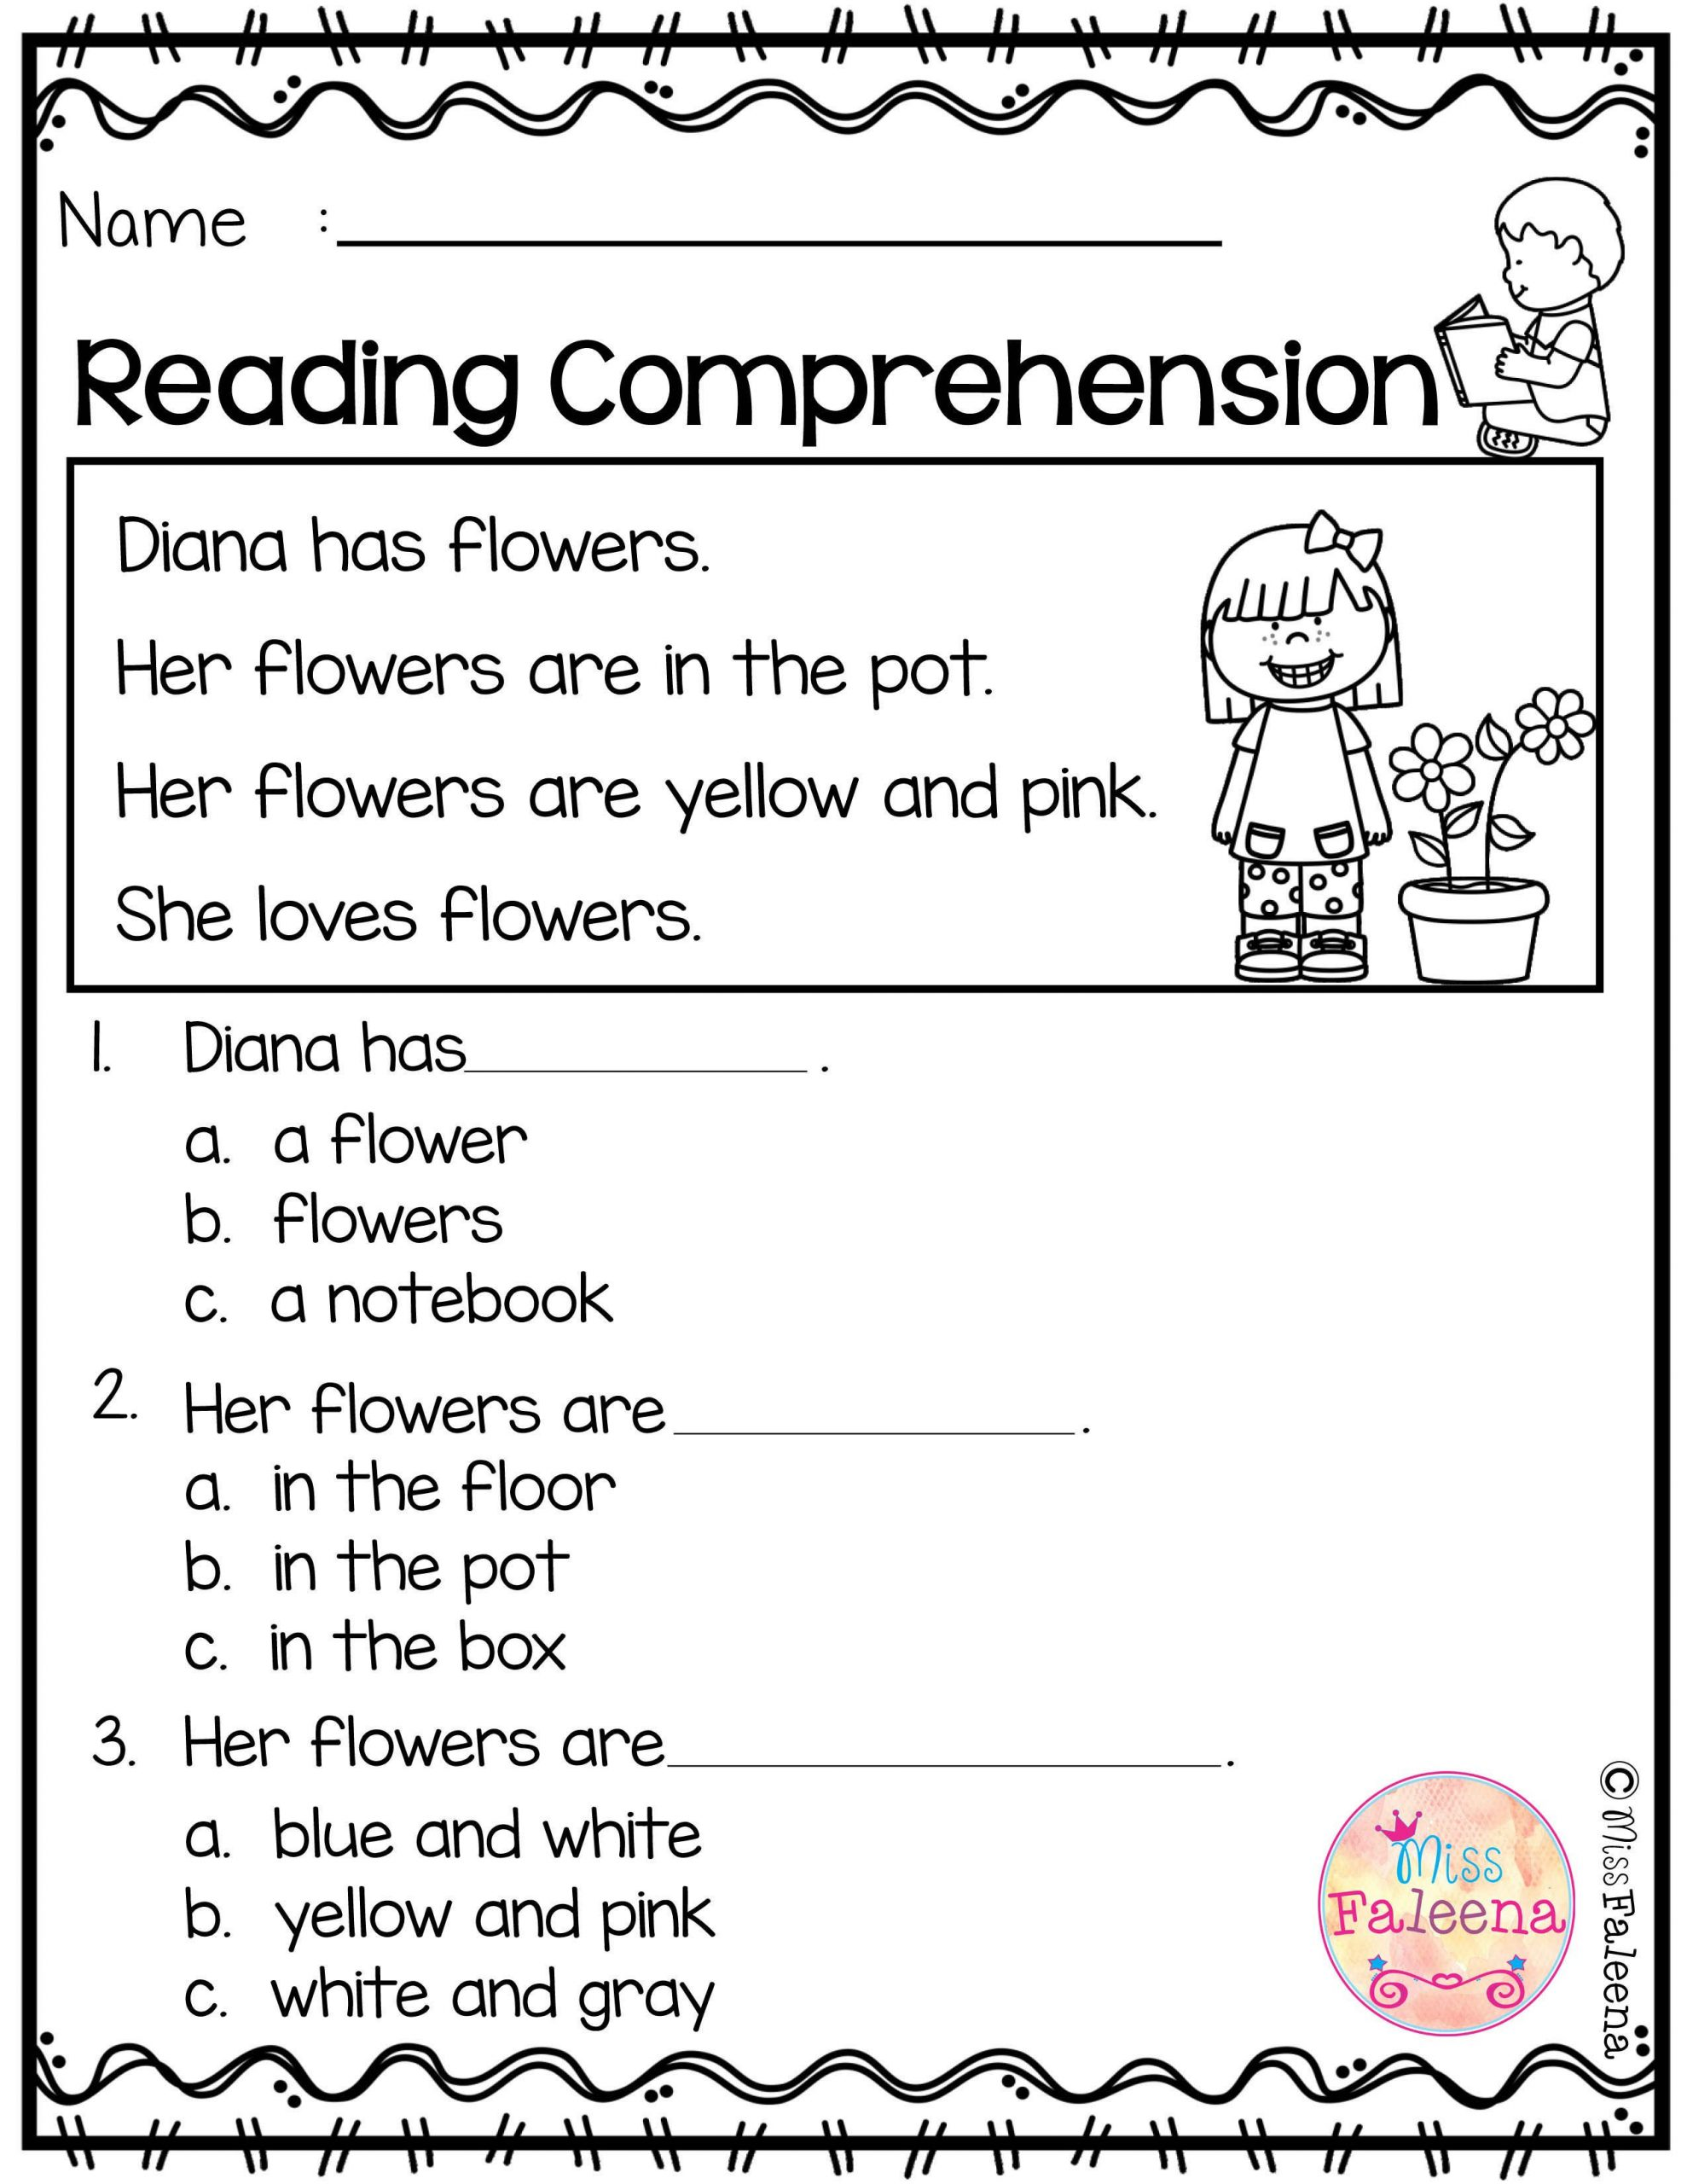 Reading Comprehension Kindergarten Worksheets Free Free Reading Prehension